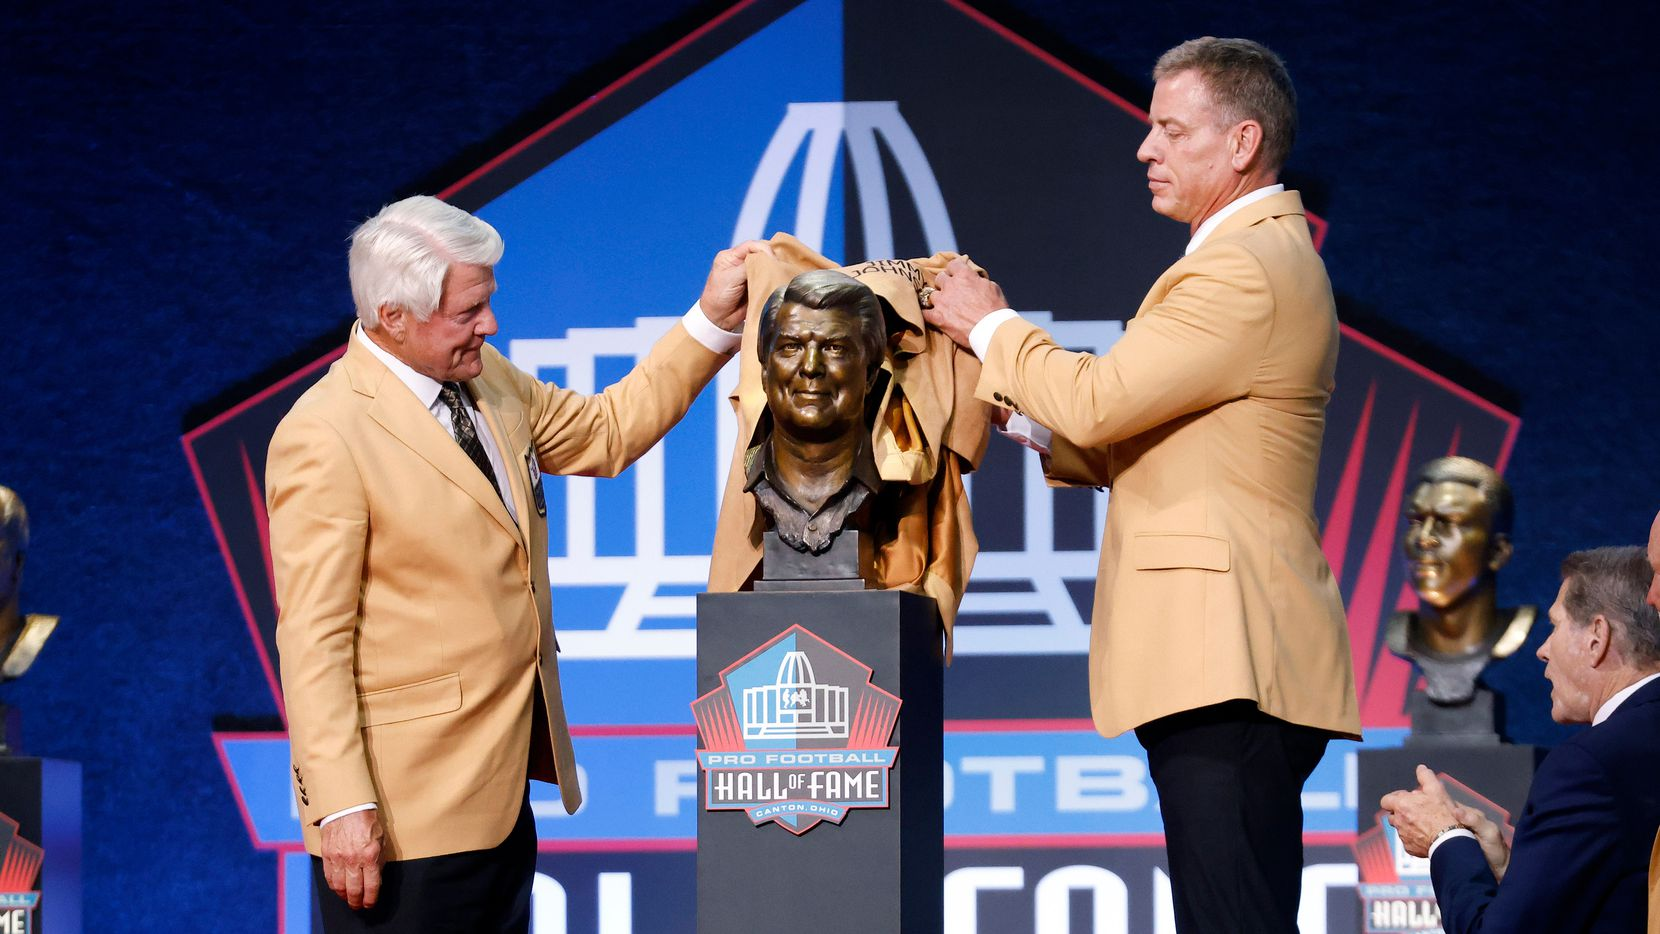 Pro Football Hall of Fame inductee Jimmy Johnson of the Dallas Cowboys (left) unveils his bronze bust with presenter and former Cowboy Troy Aikman during the Centennial Class of 2020 enshrinement  ceremony at Tom Benson Hall of Fame Stadium in Canton, Ohio, Saturday, August 7, 2021. (Tom Fox/The Dallas Morning News)